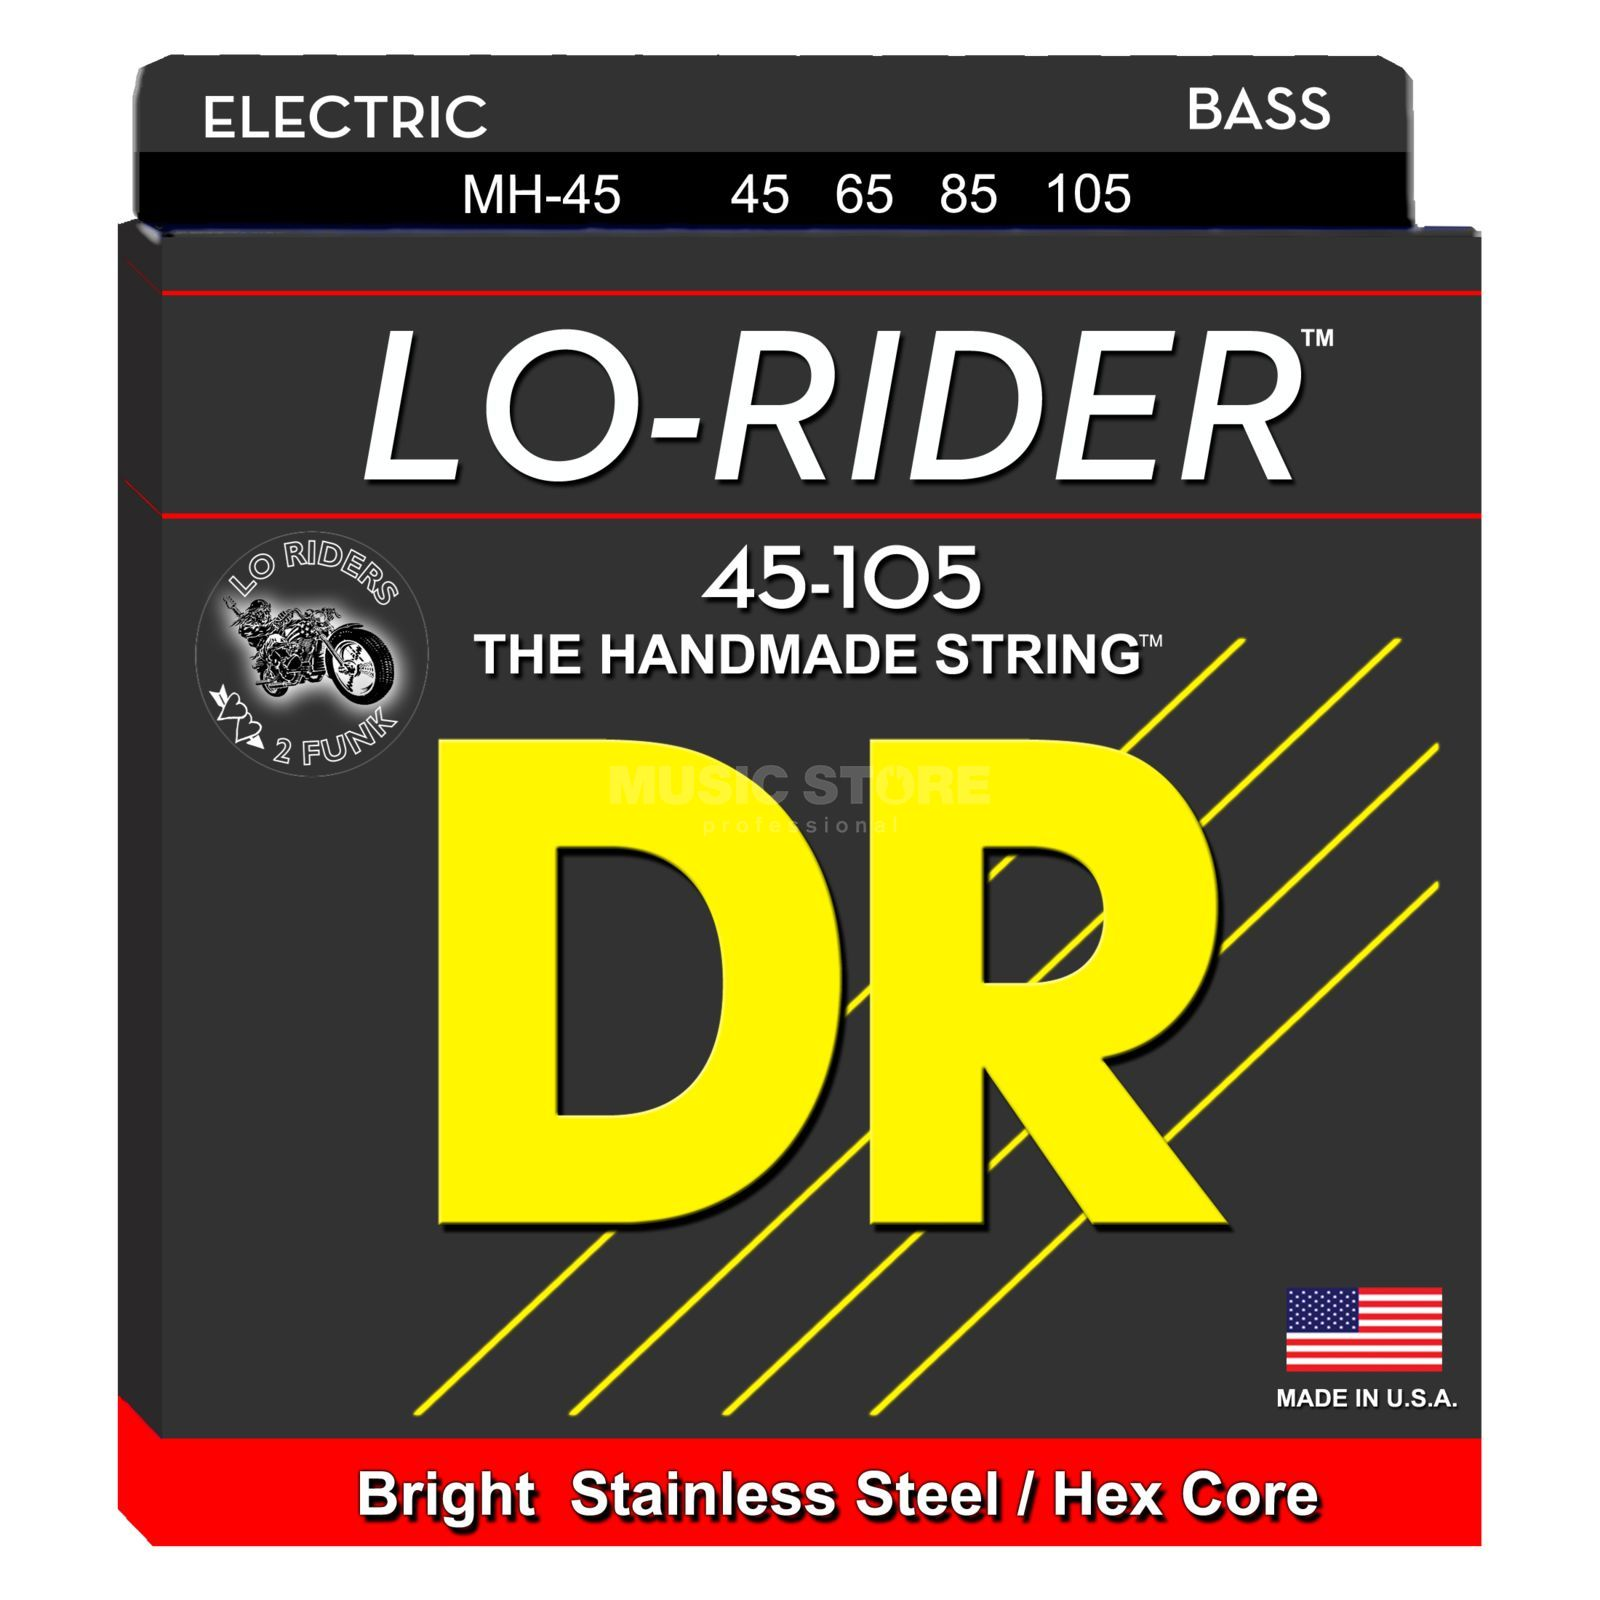 DR 4er bas 45-105 Lo Rider Stainless Steel MH-45 Productafbeelding